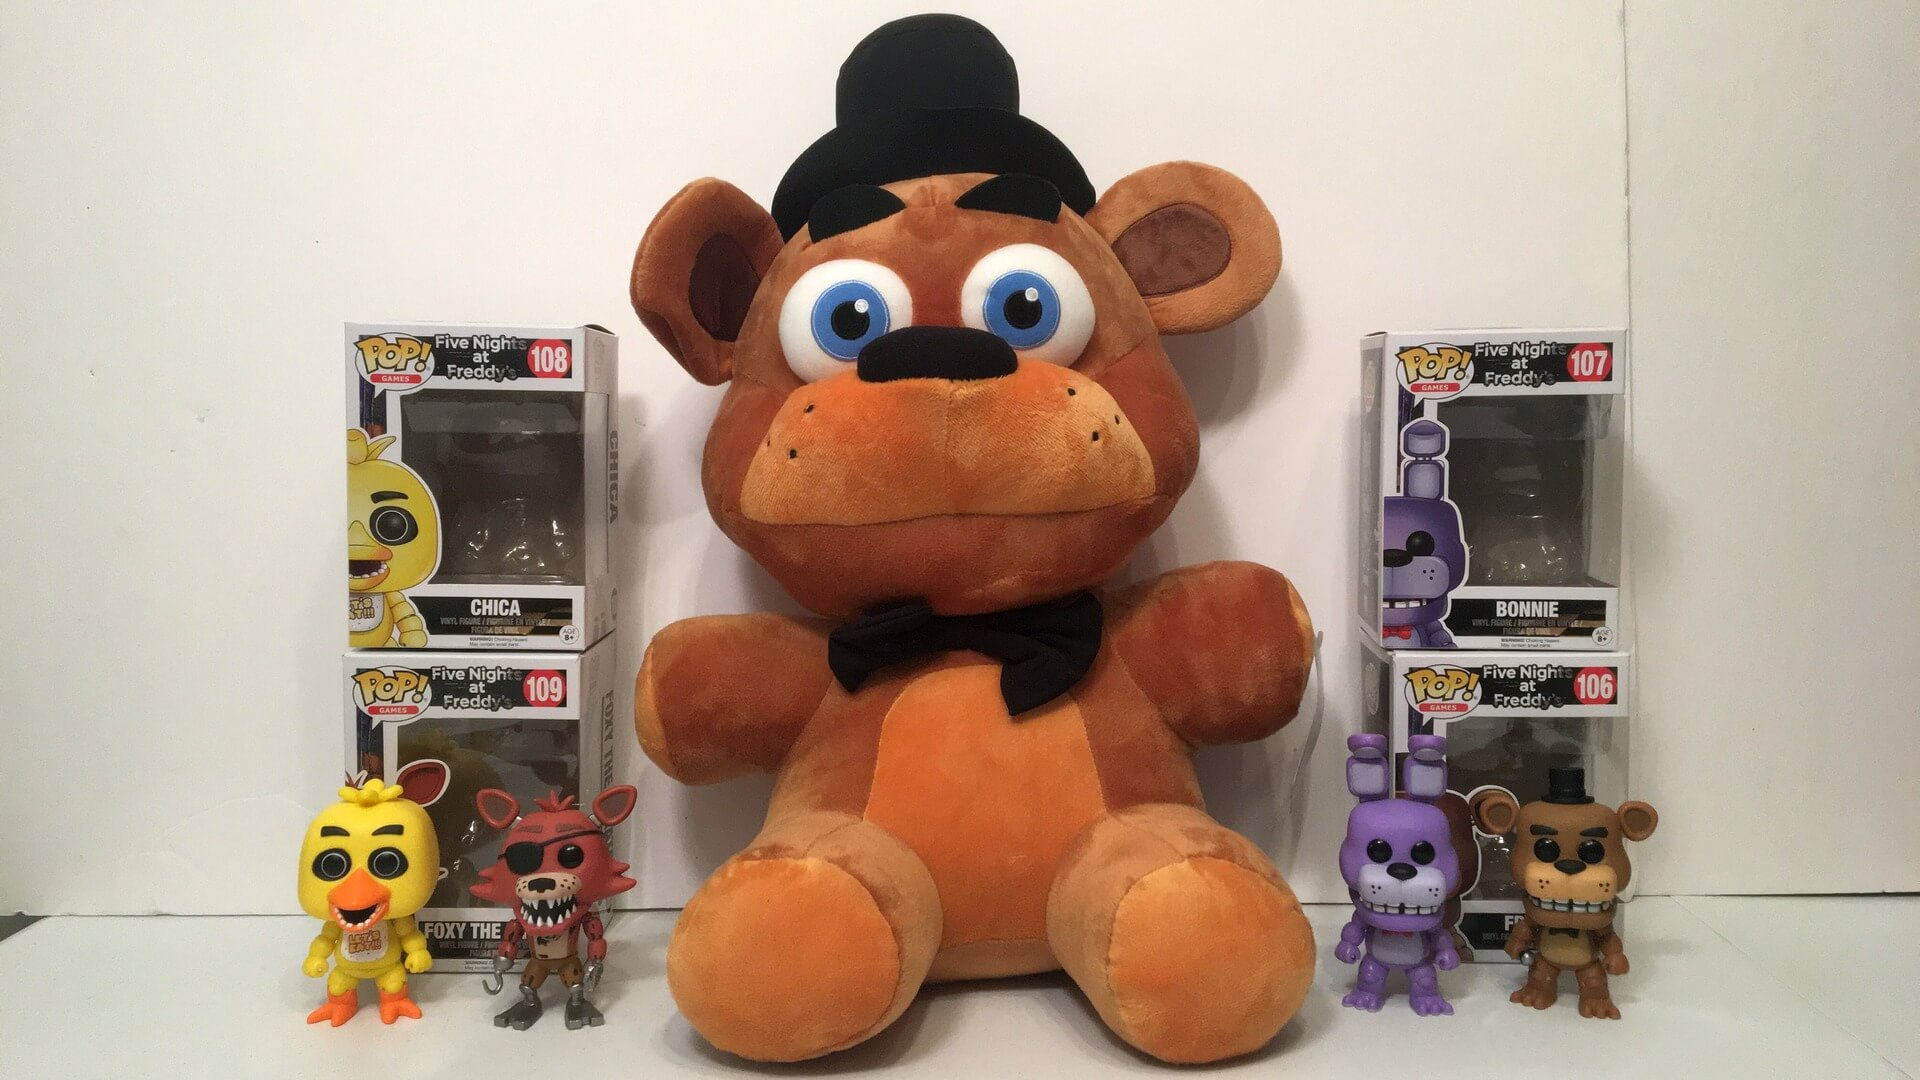 Funko Has Five Nights at Freddy's and More - Review